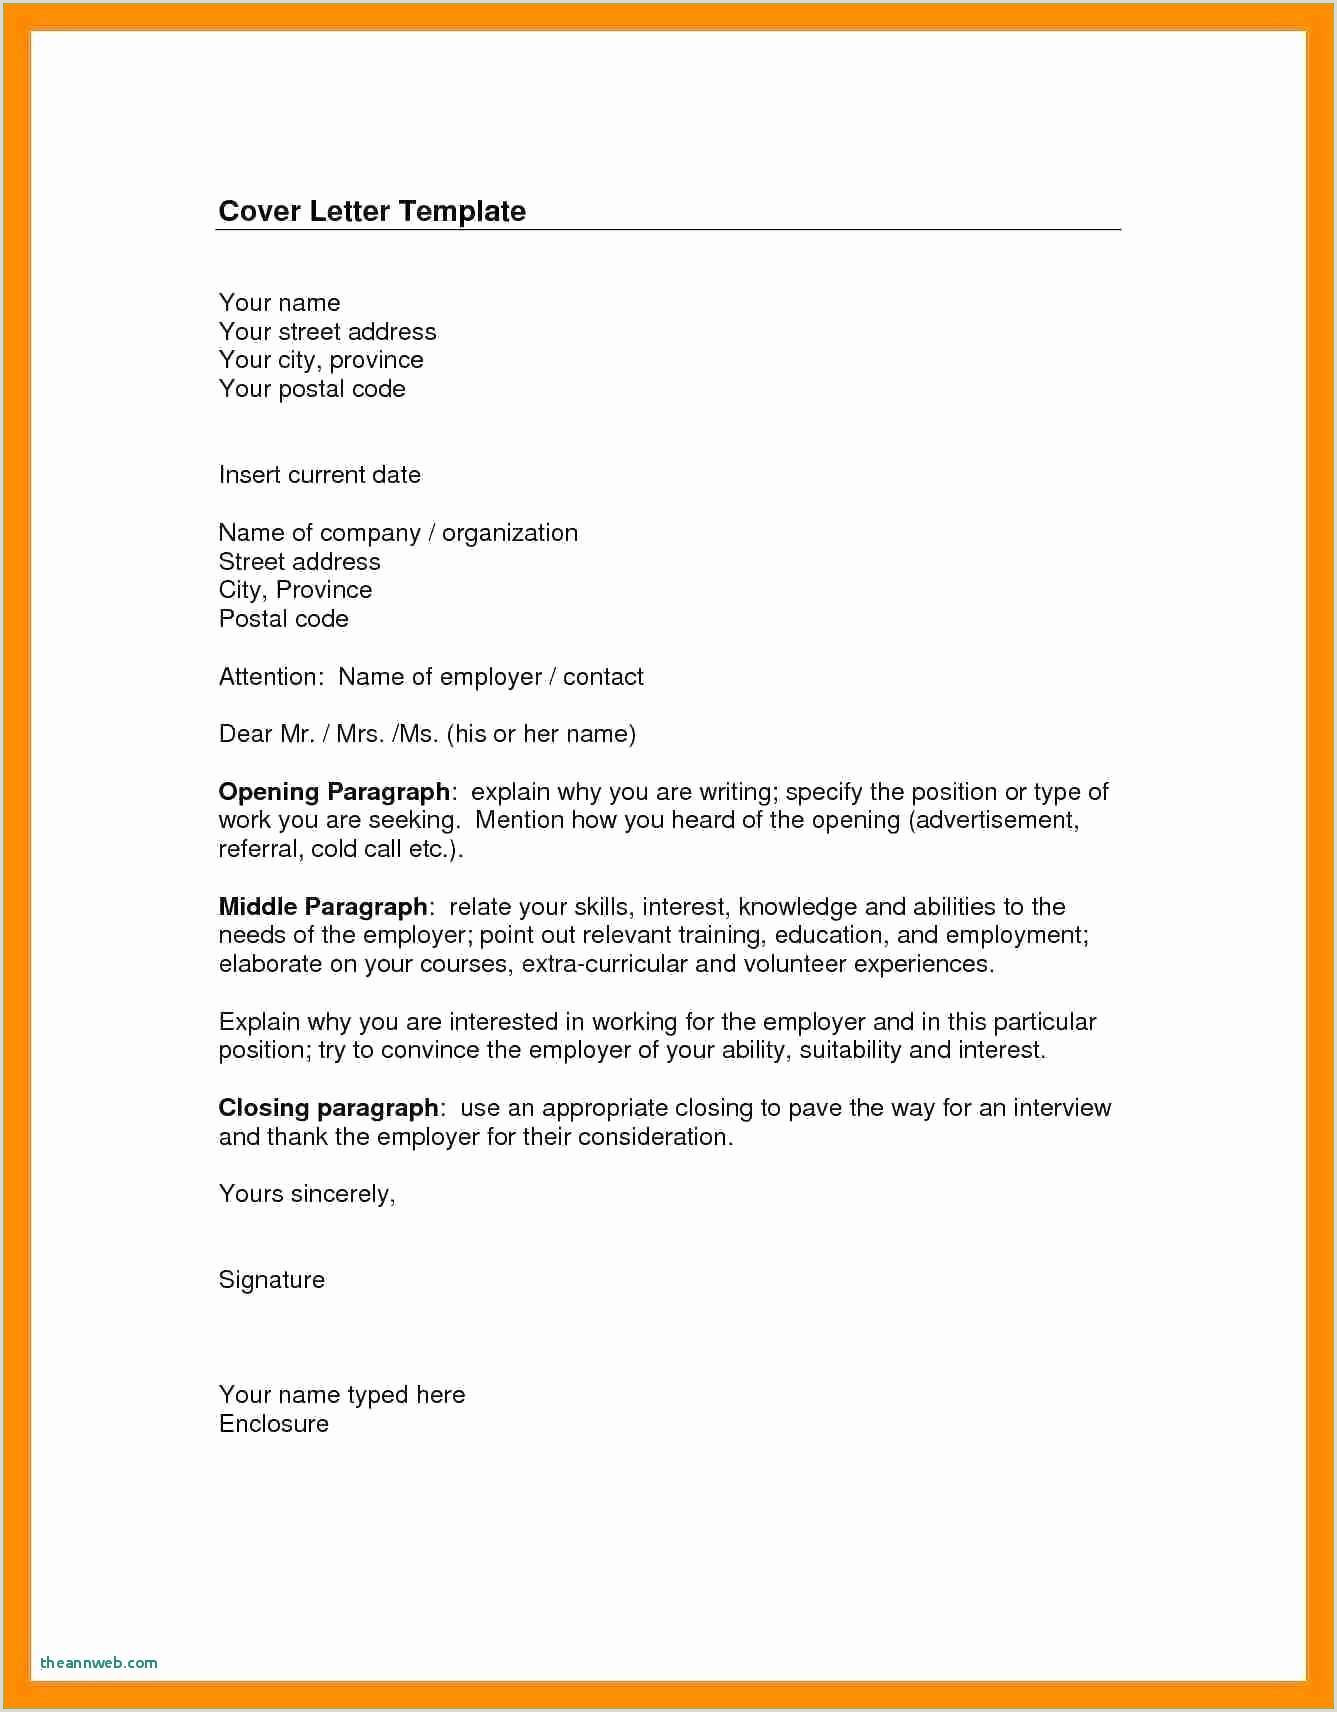 Cfo Resume Cover Letter Best Cfo Resume Template